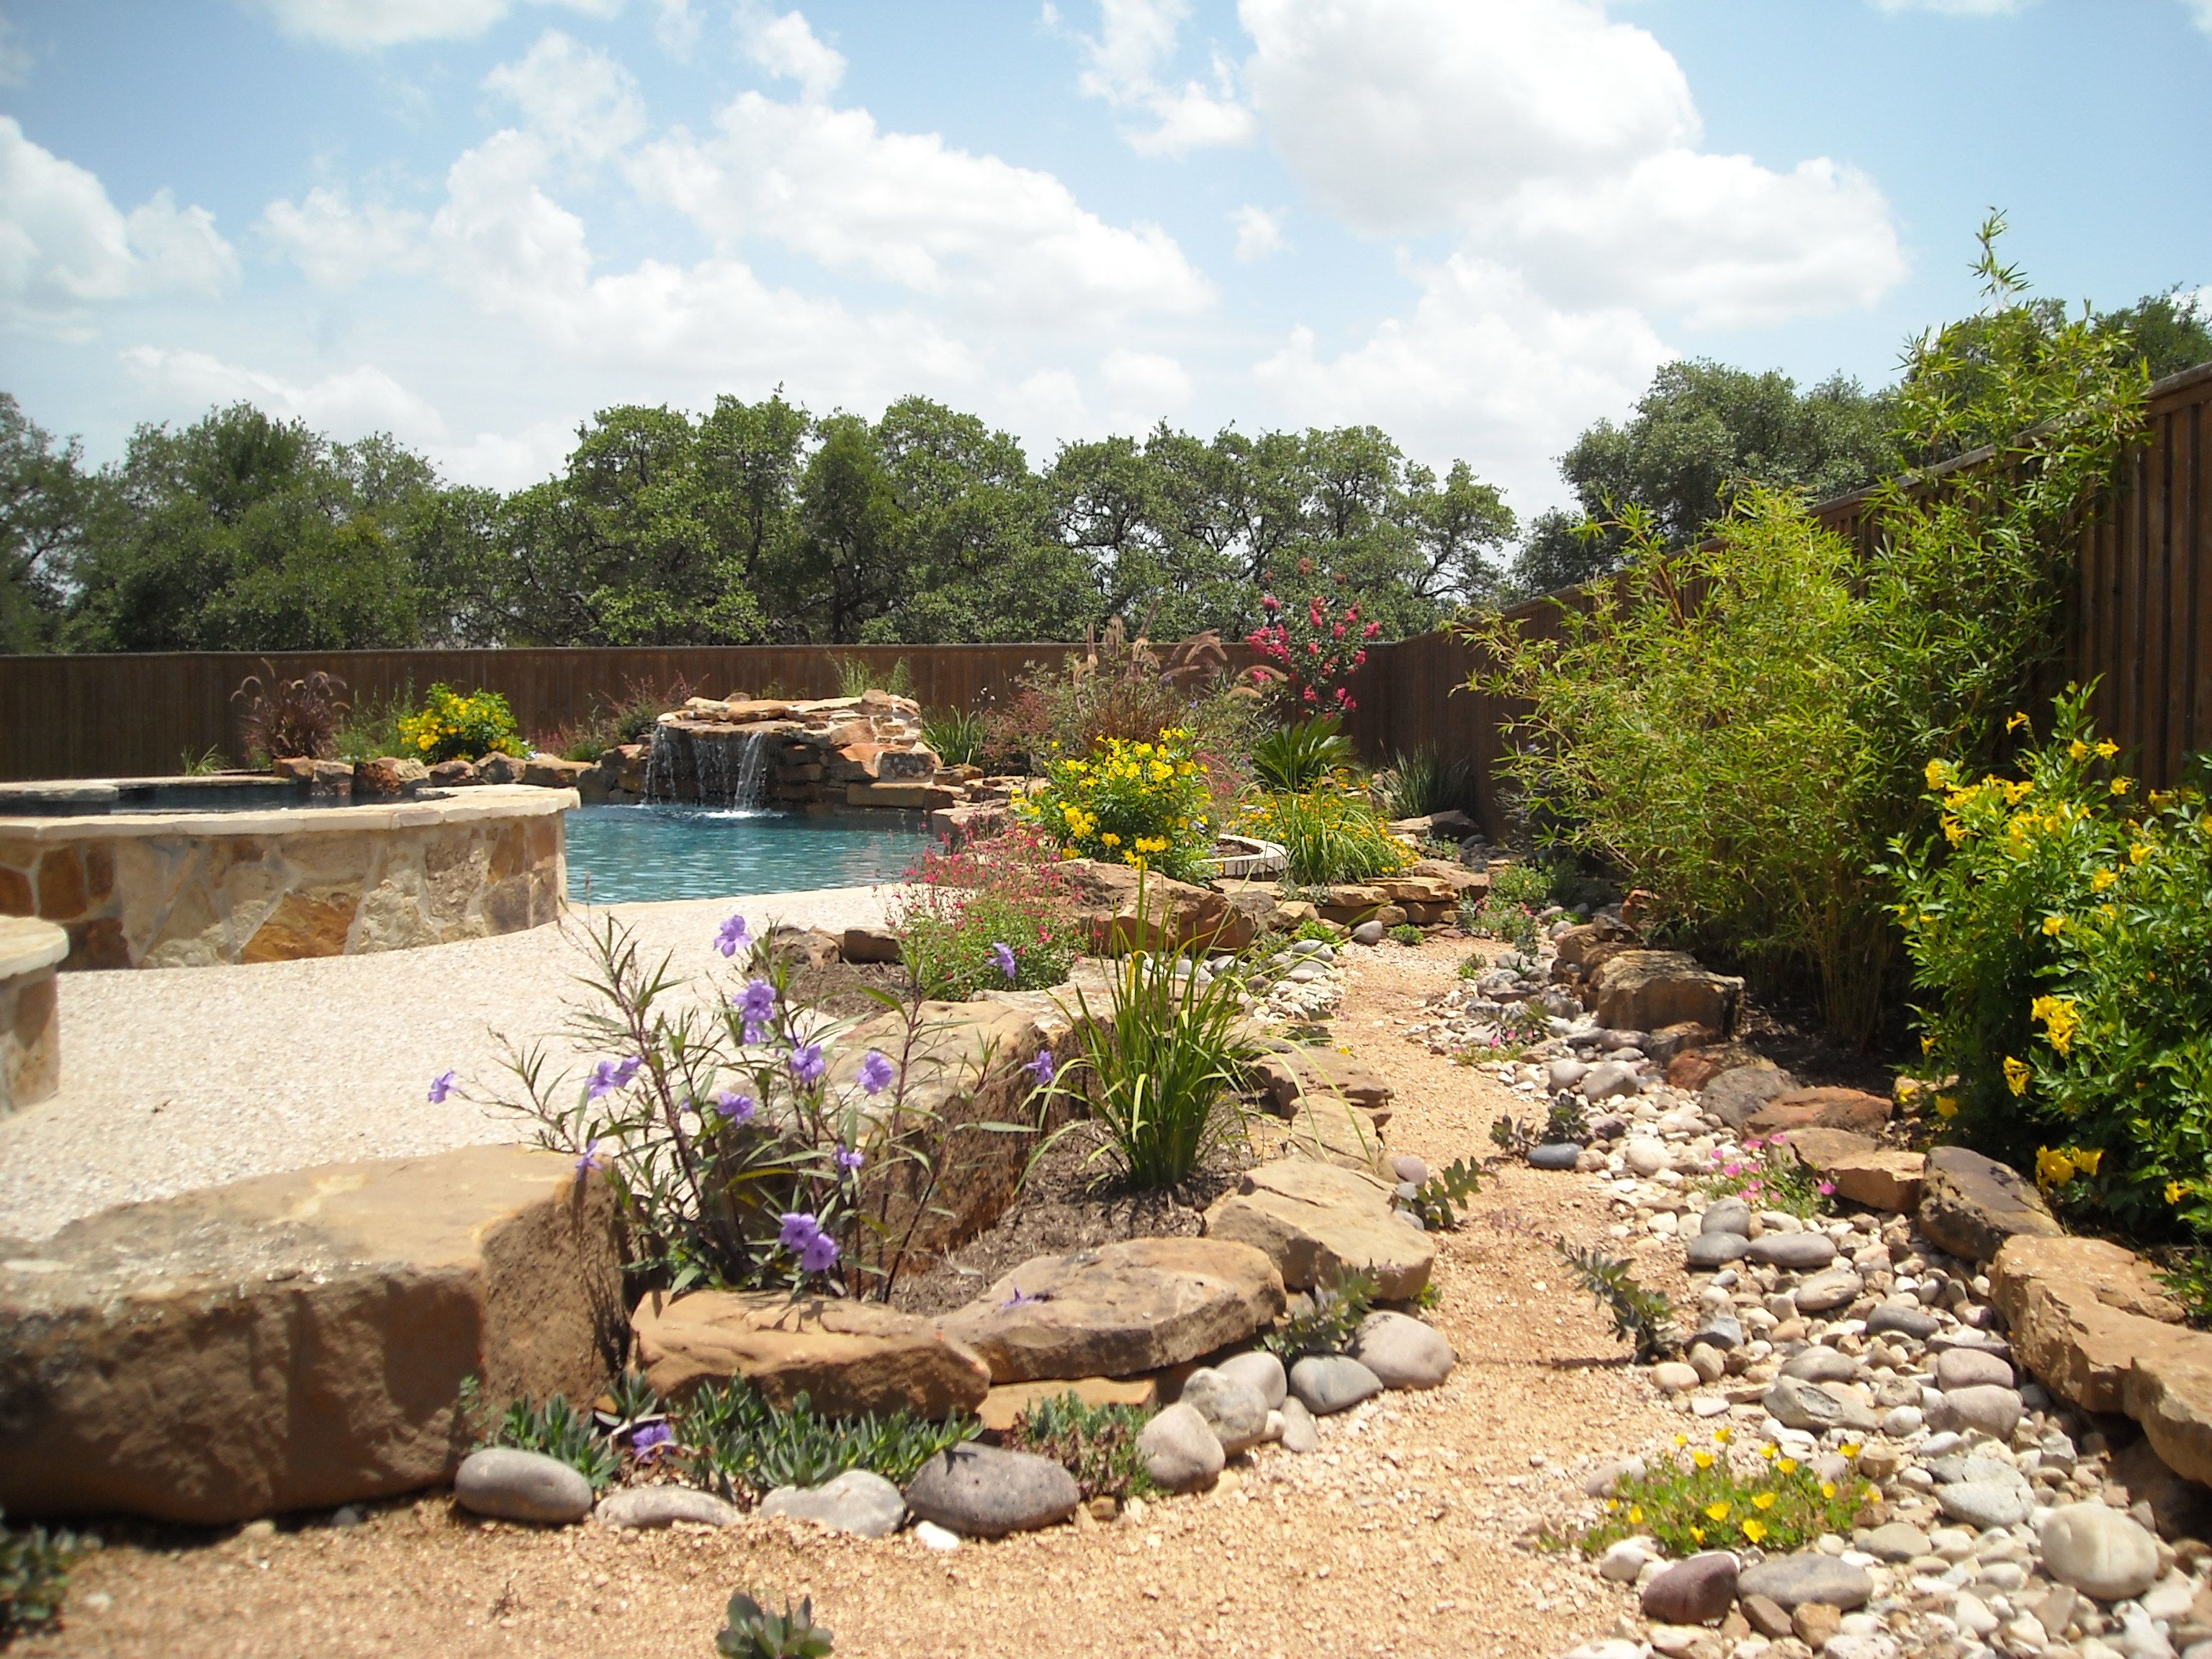 Mediterranean style outdoor cushion rock patio umbrella hot tub patio - Native Landscaping Around A Pool With Hot Tub And Outdoor Kitchen It Even Has A